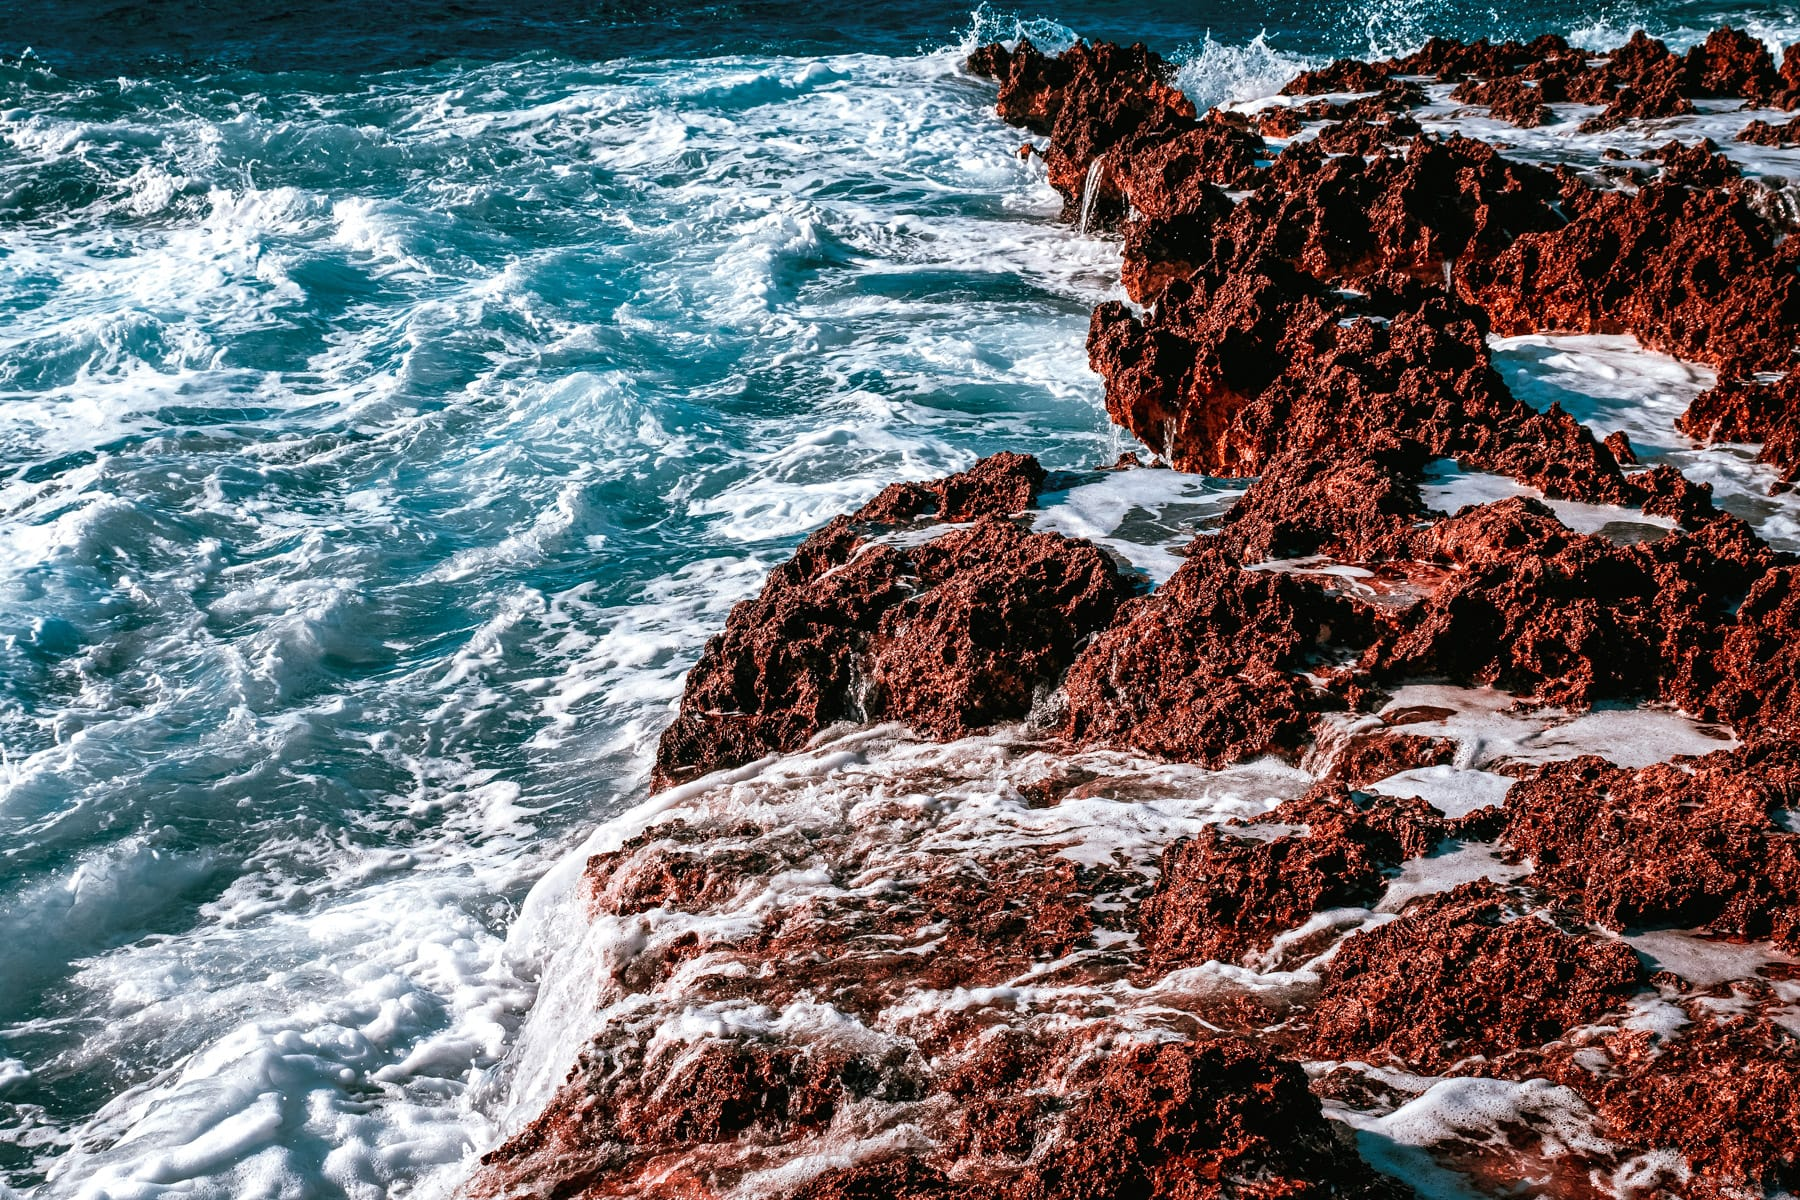 The Caribbean Sea crashes ashore on the jagged rocks of Grand Cayman's Turtle Reef.